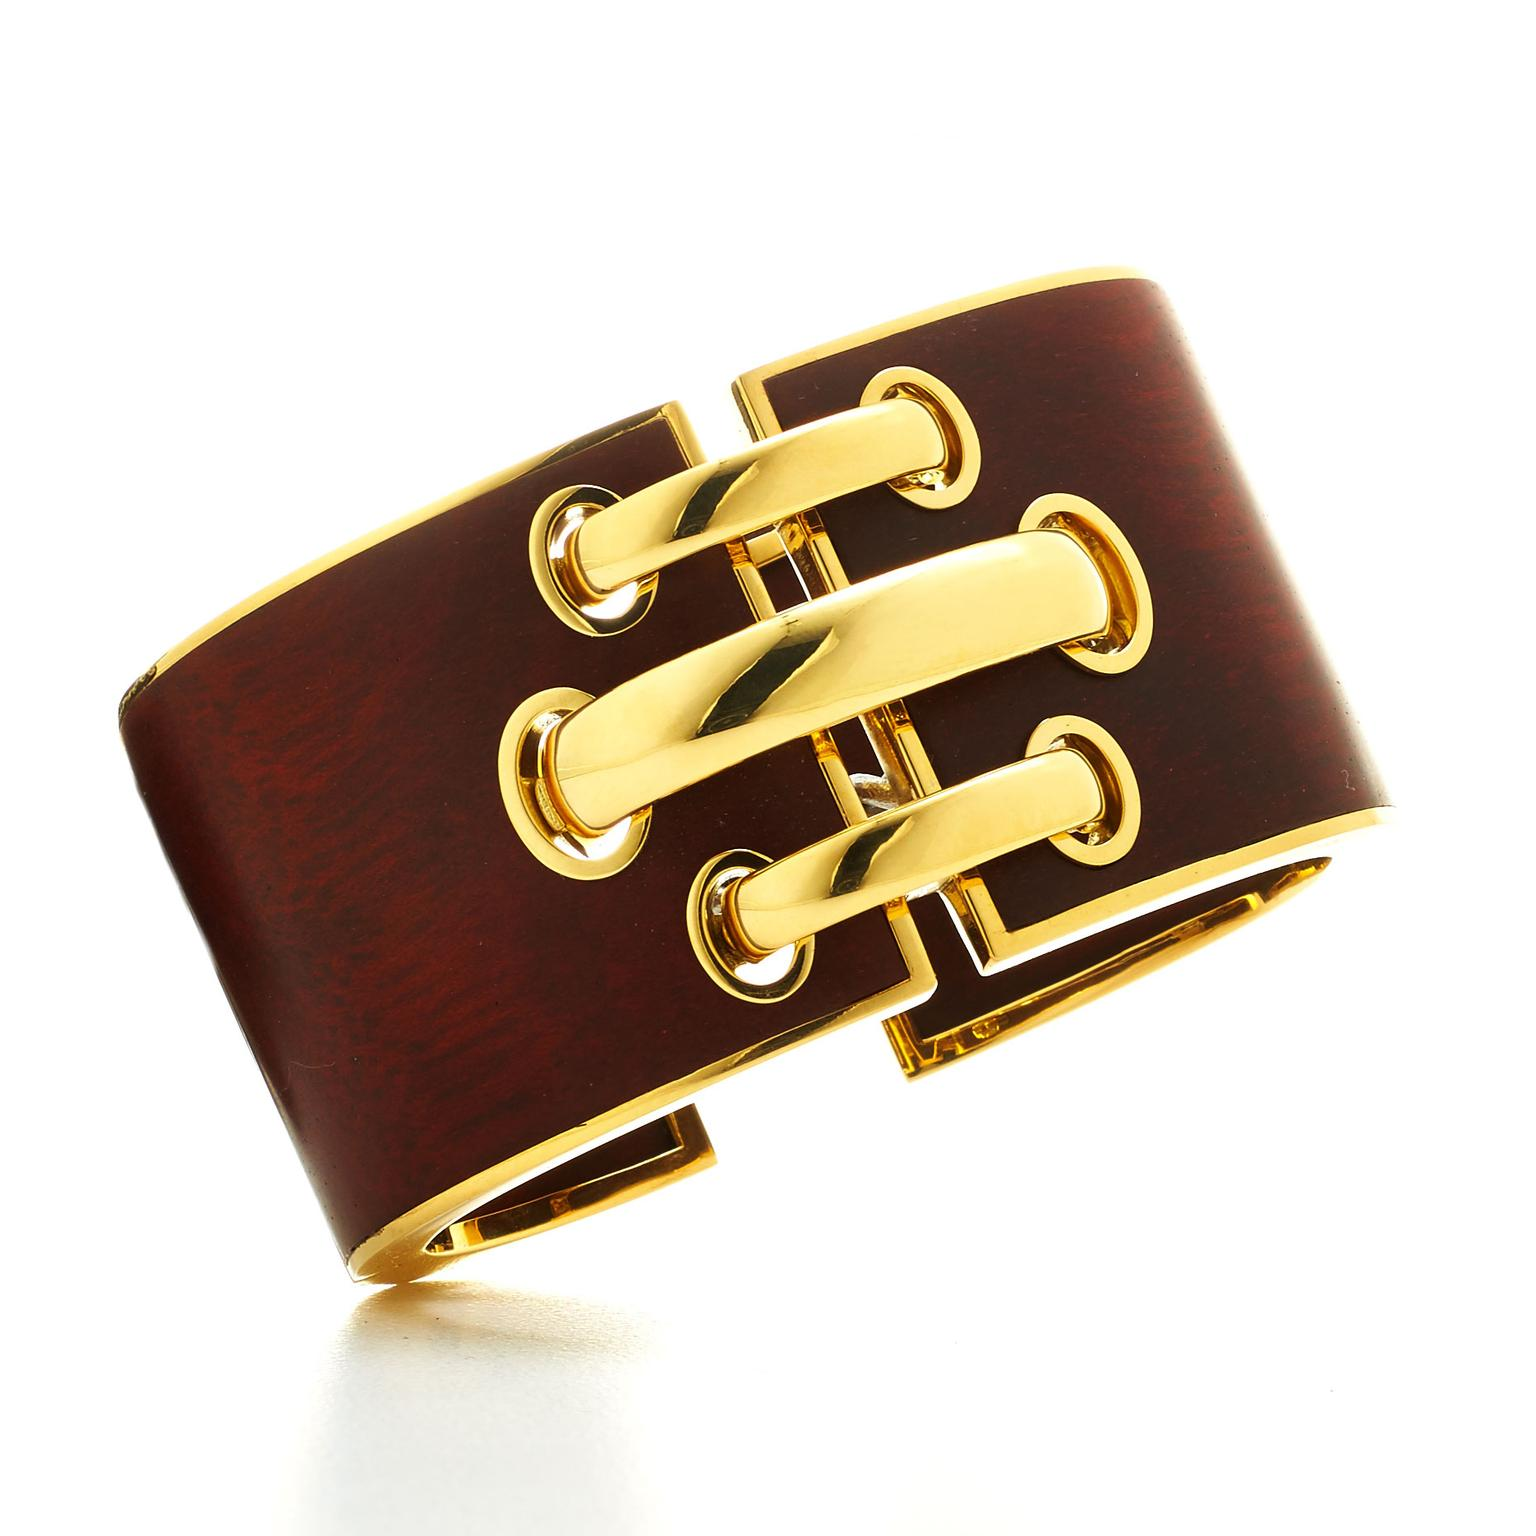 David Webb bloodwood gold Shoelace cuff